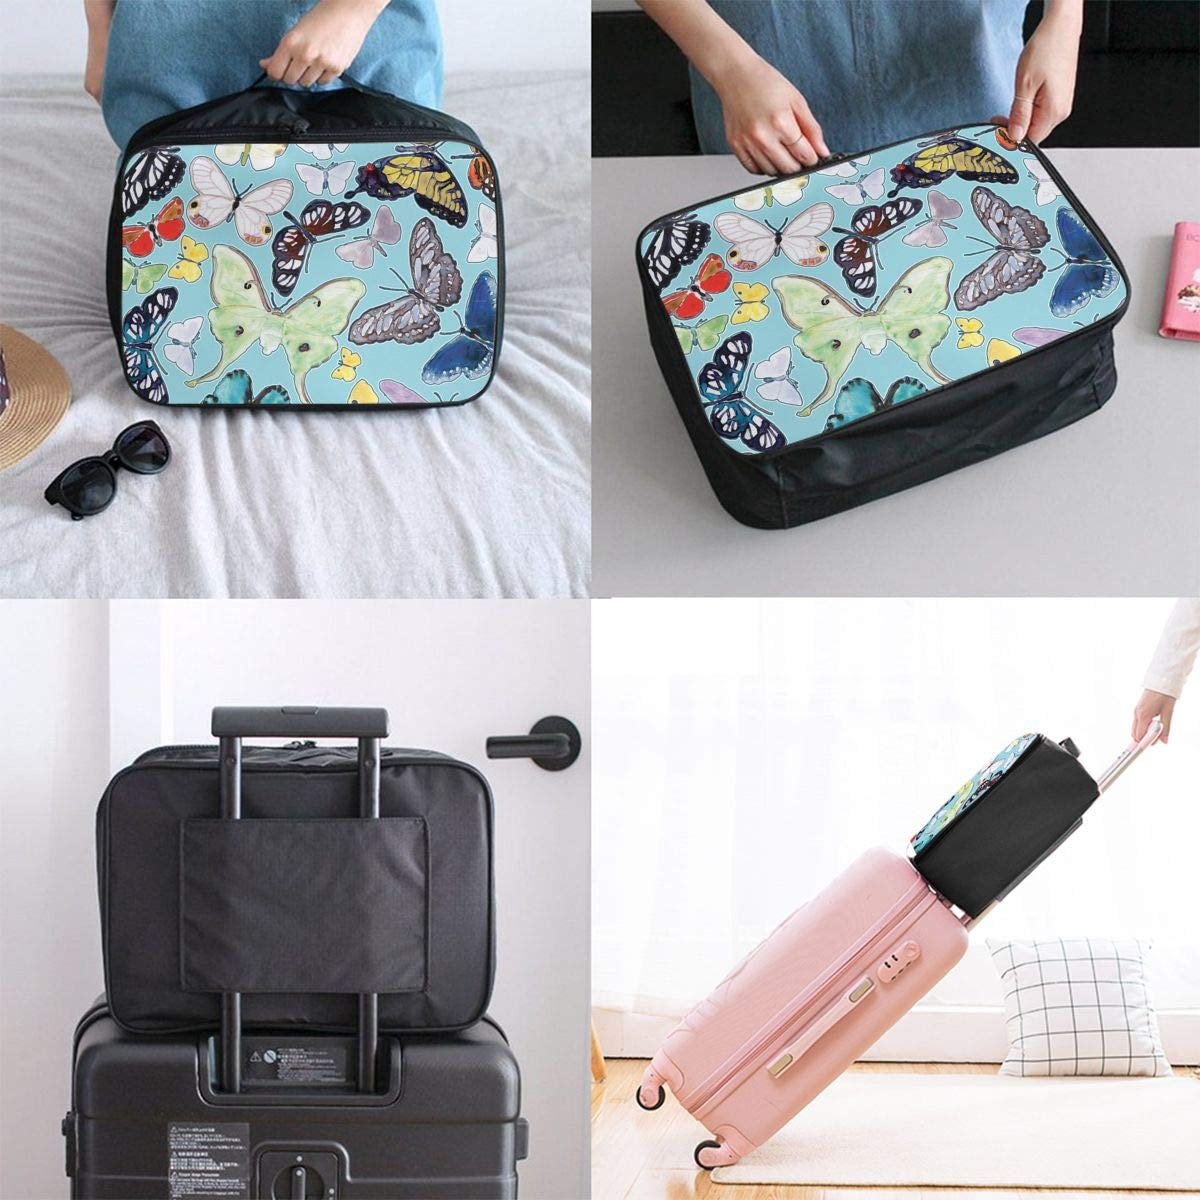 YueLJB Splashy Butterfly Lightweight Large Capacity Portable Luggage Bag Travel Duffel Bag Storage Carry Luggage Duffle Tote Bag